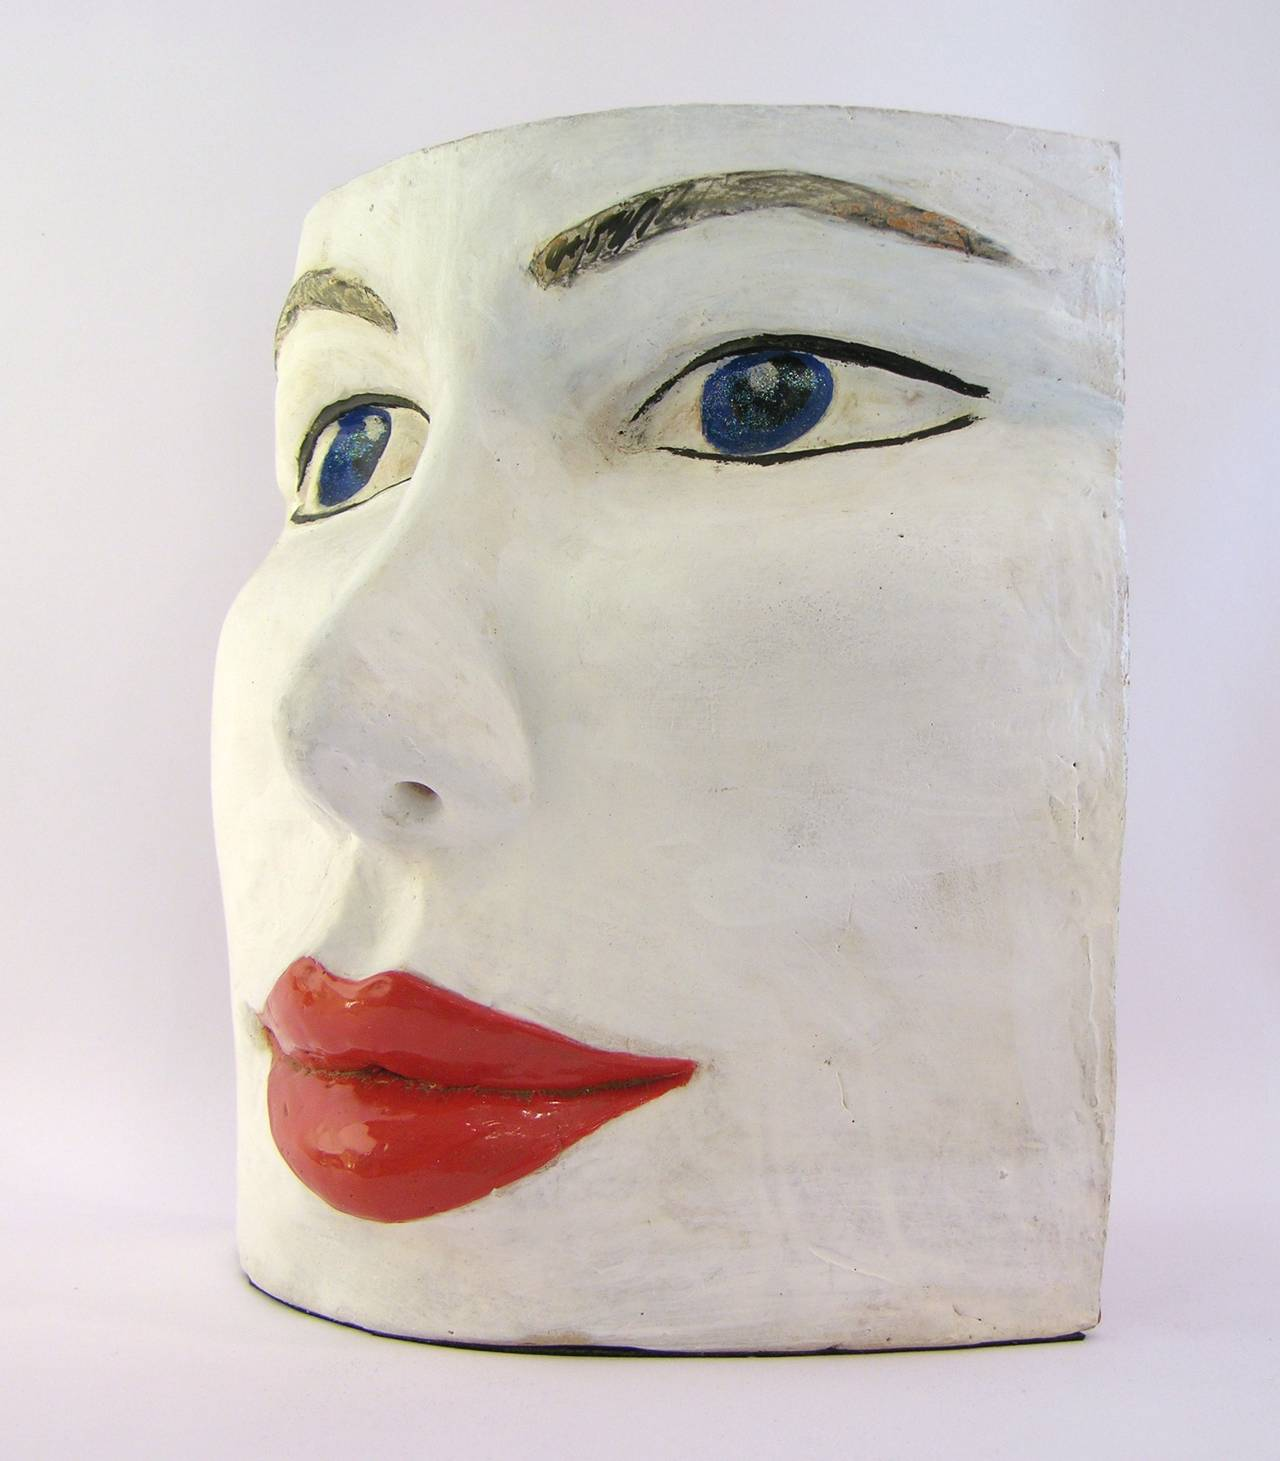 Blue Eyes Face Terra Cotta Sculpture by Ginestroni 3